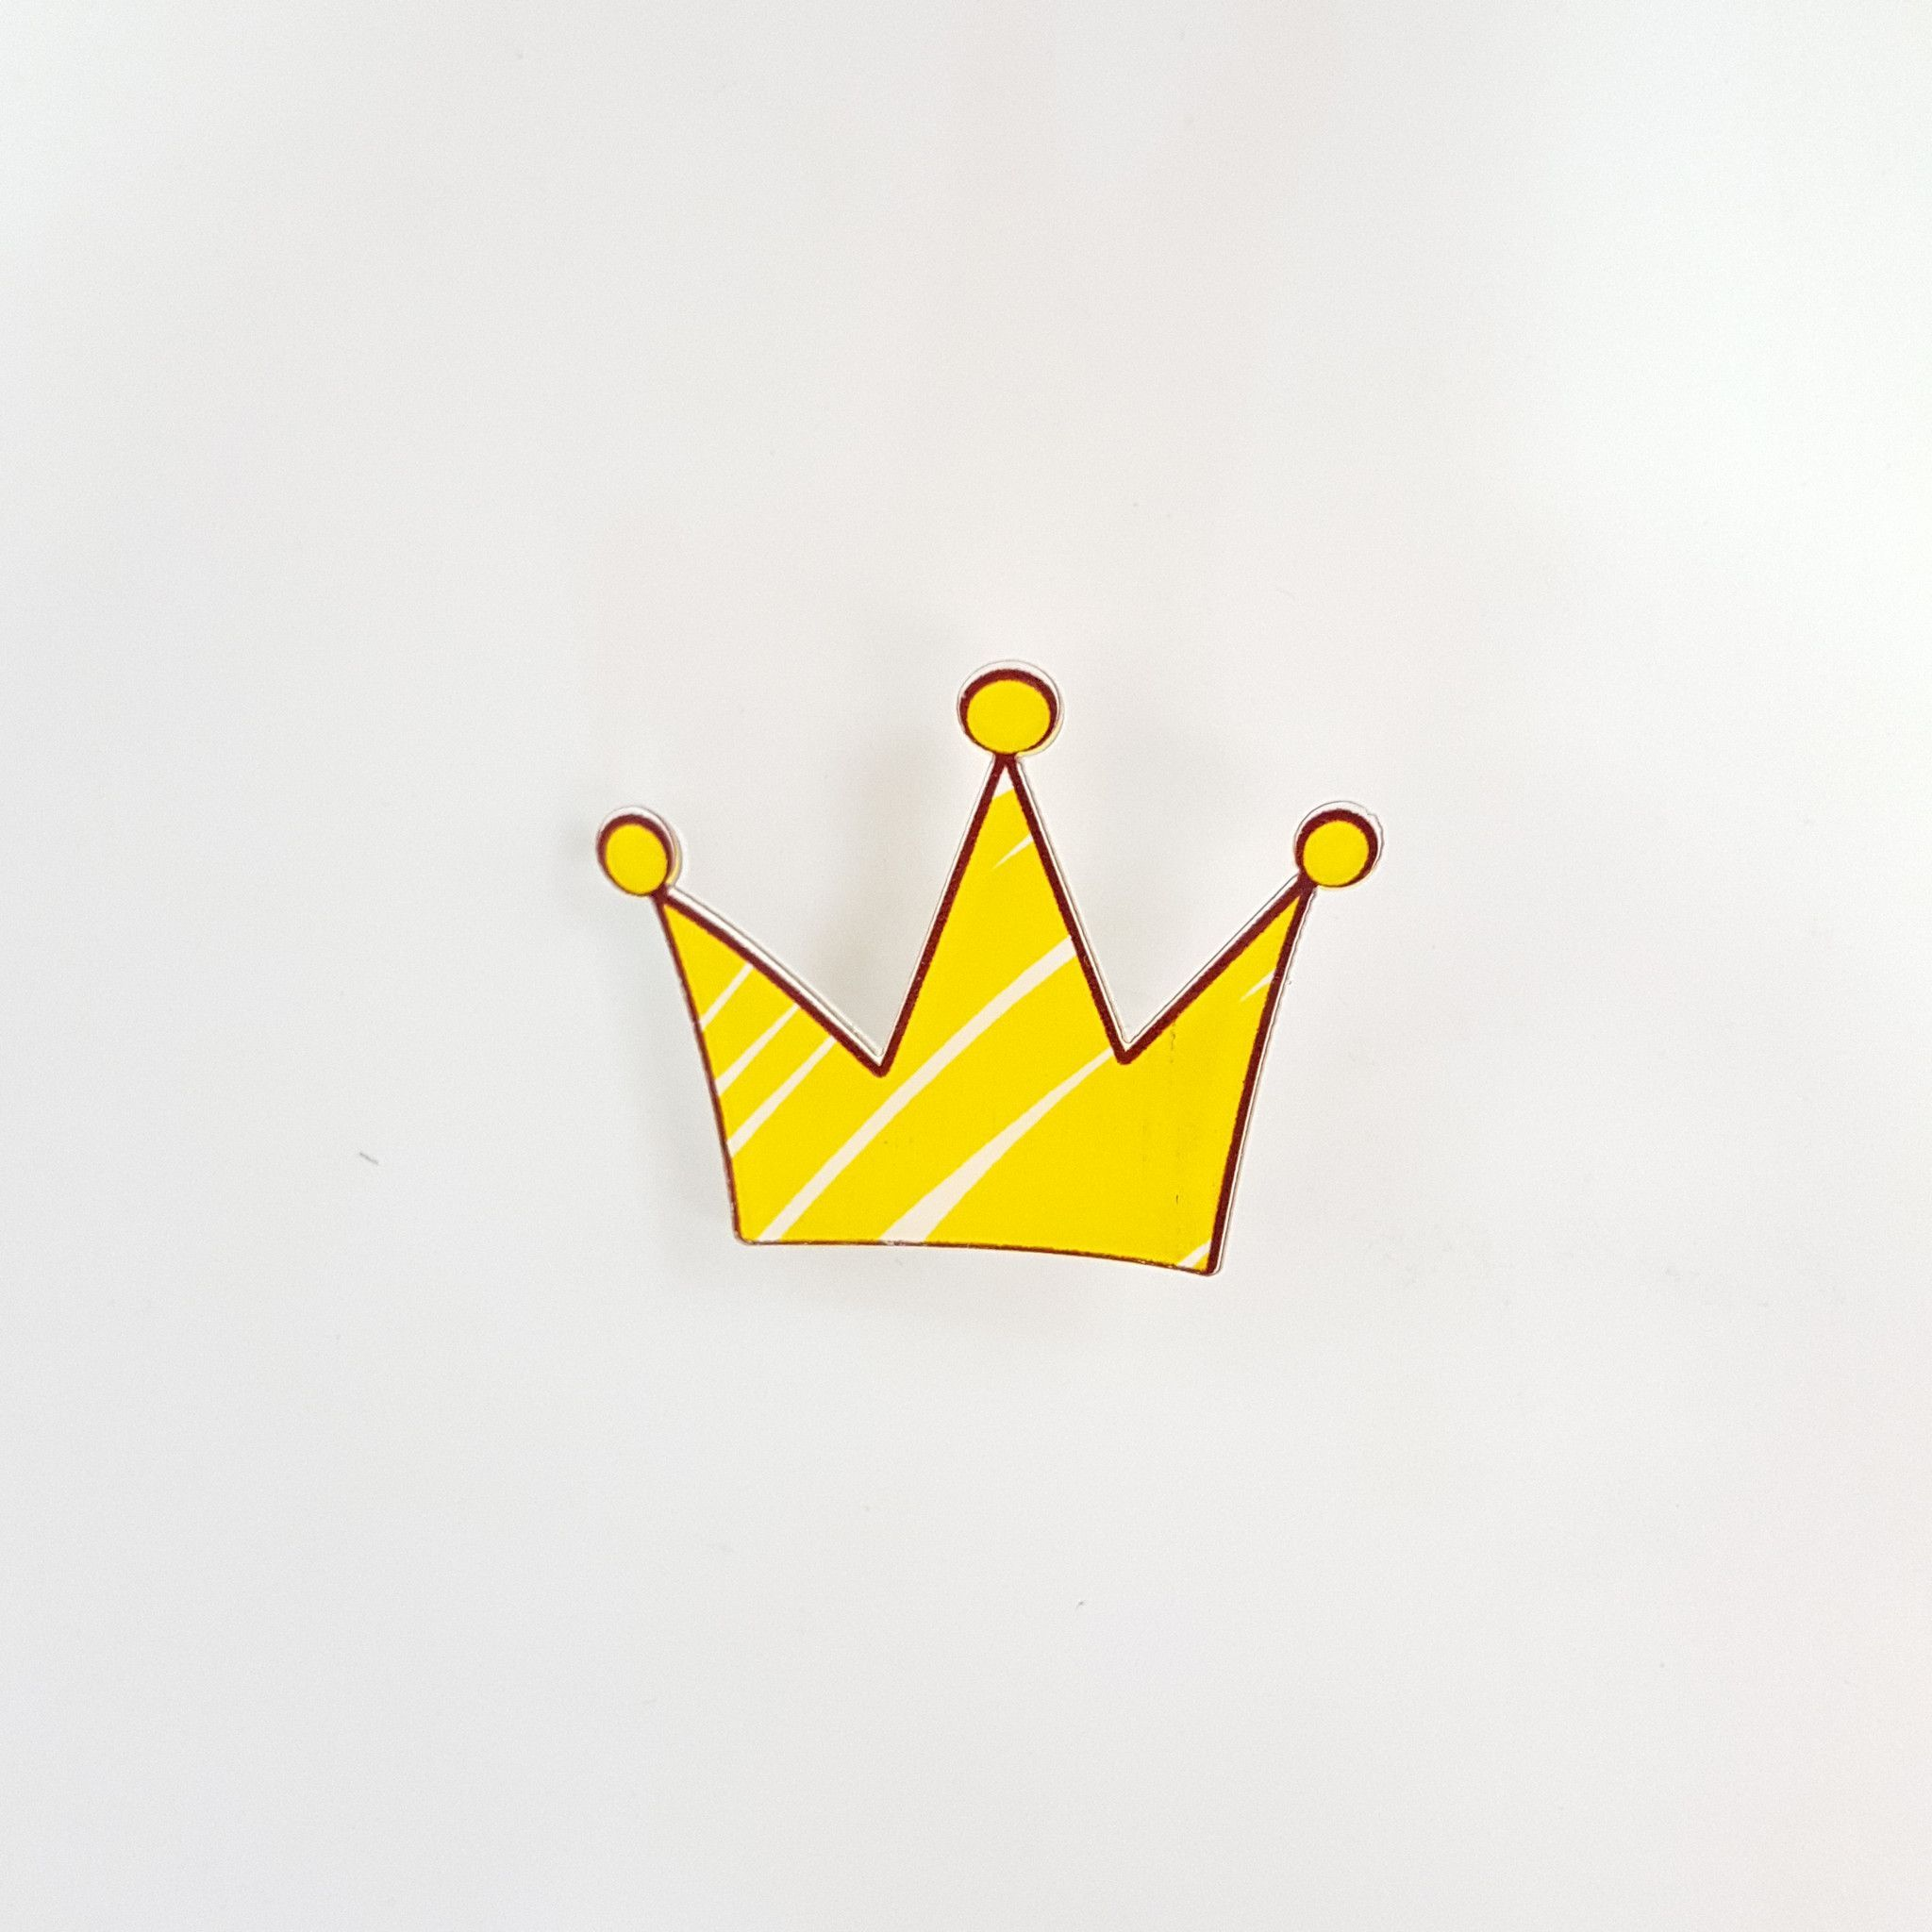 Yellow Cartoon Crown / Pngtree provides millions of free png, vectors, clipart images and psd graphic resources for designers.| 3043339.